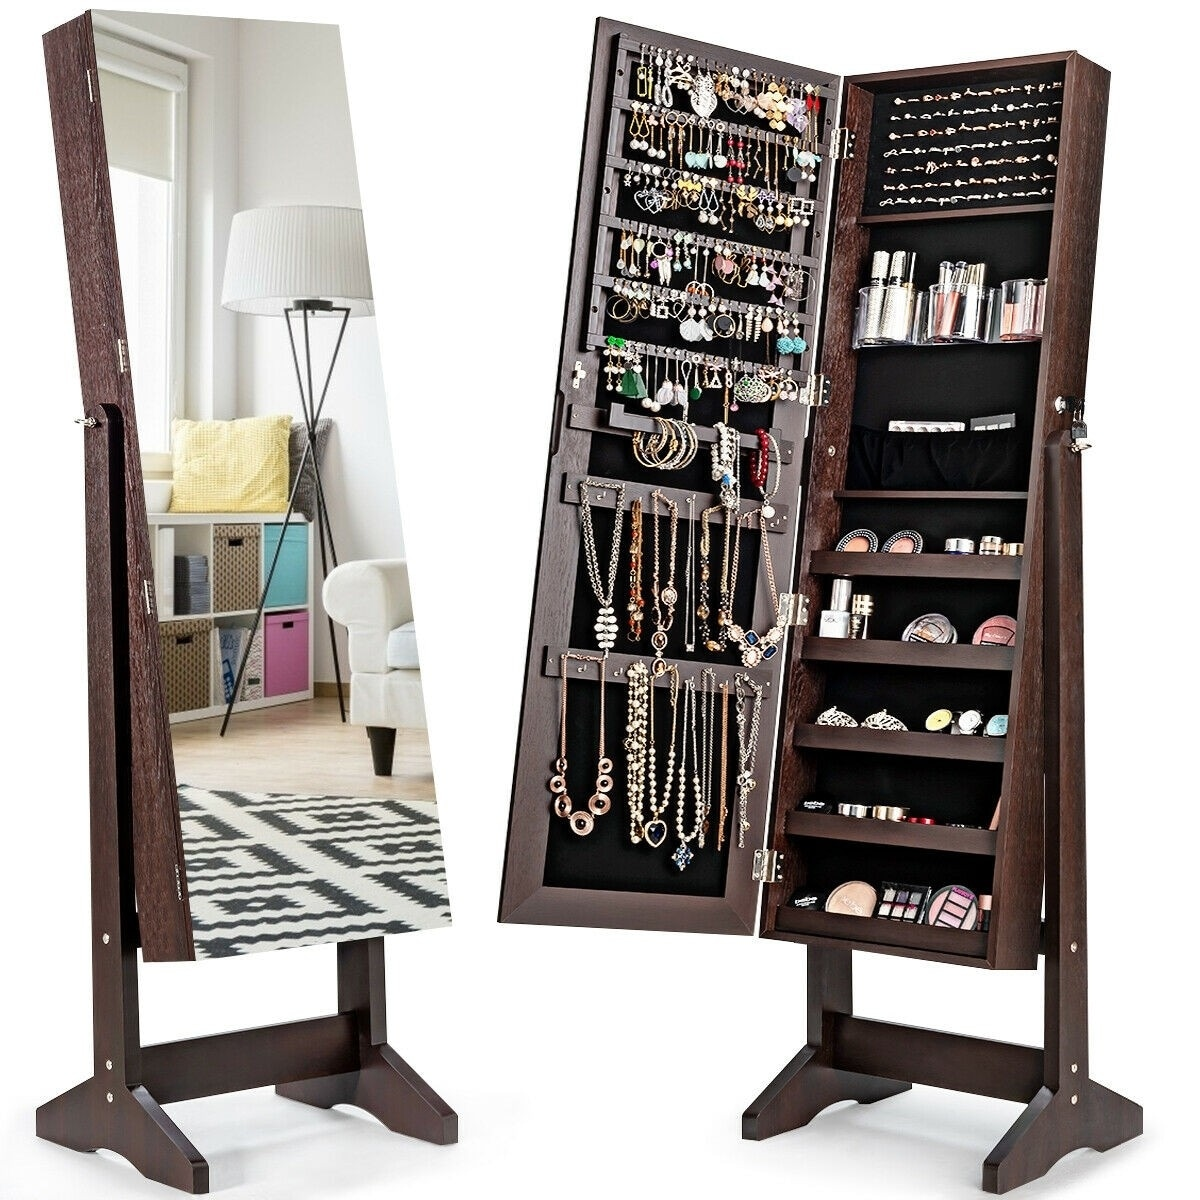 Standing Jewelry Armoire Cabinet With Full Length Mirror Overstock 32262283 White